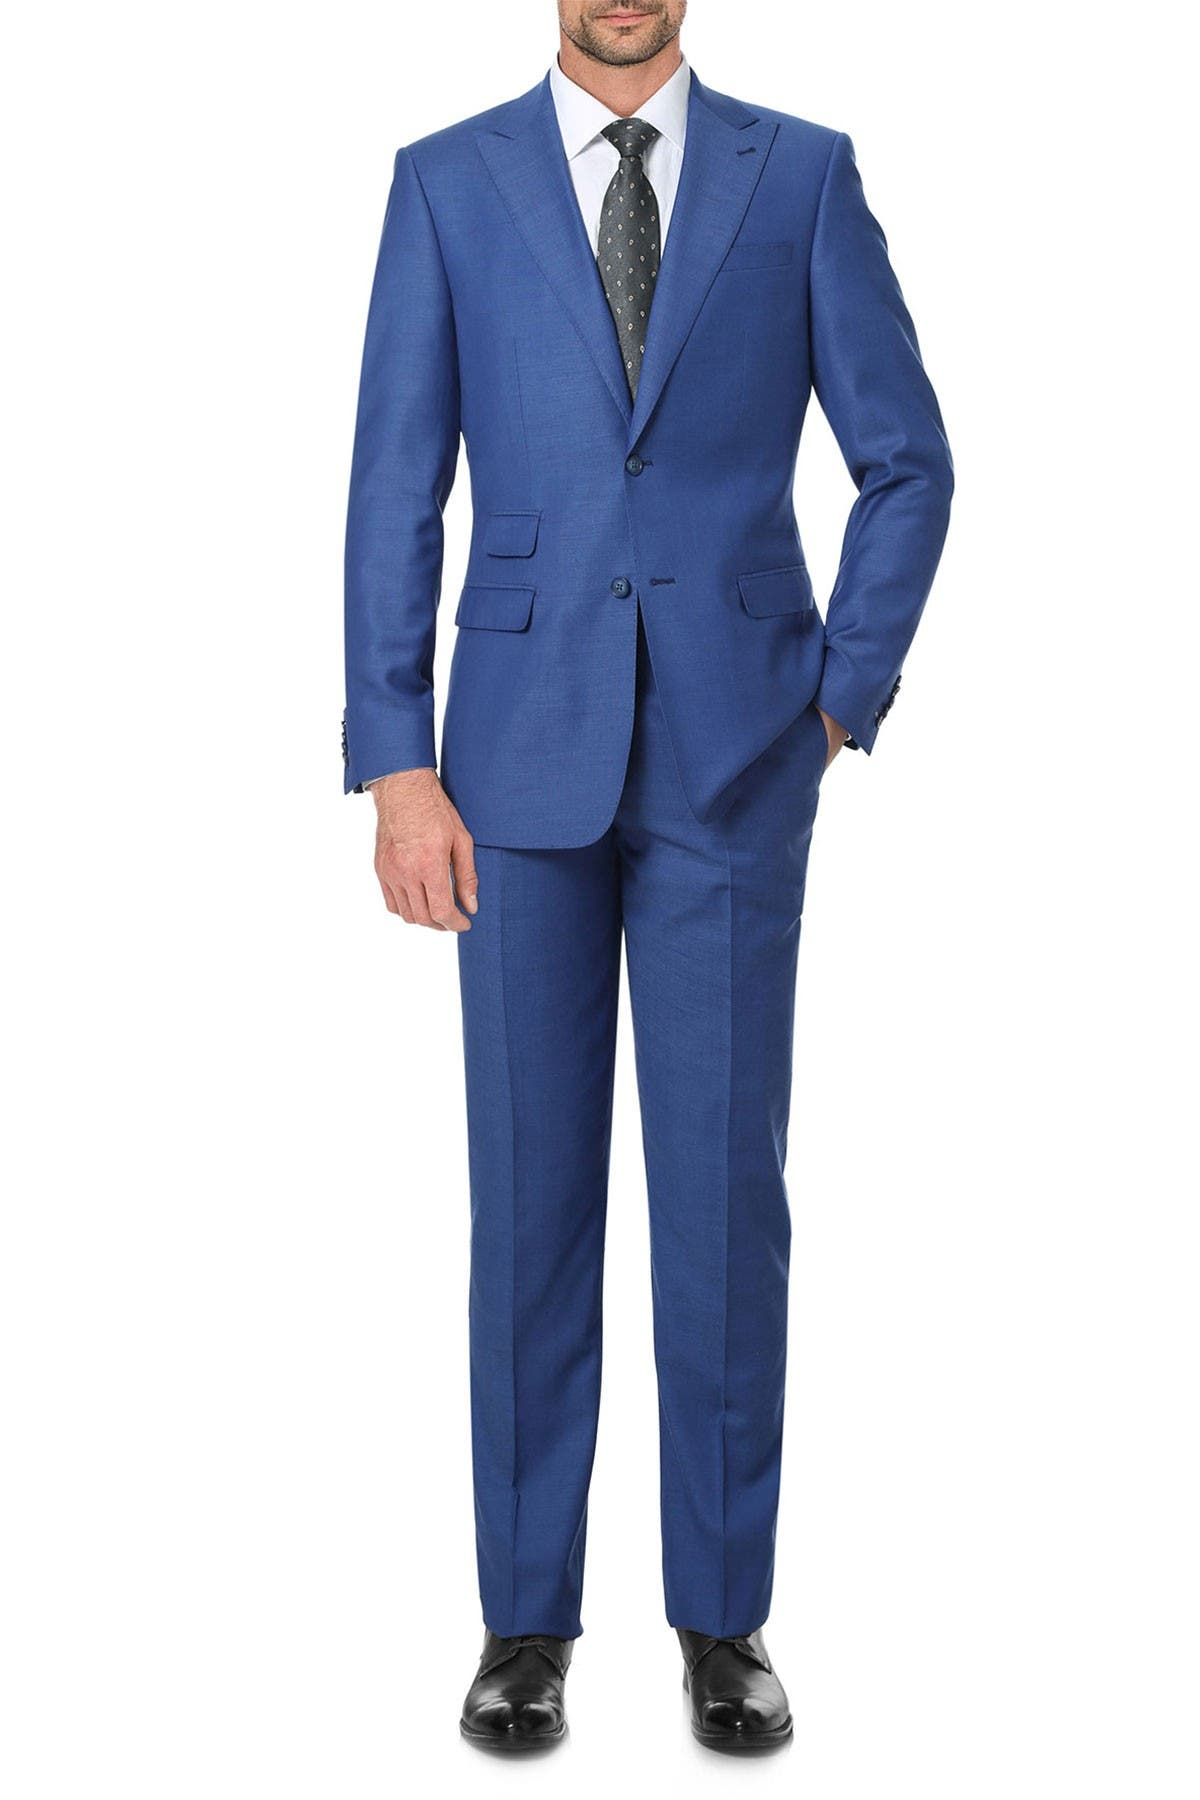 Image of English Laundry Solid Blue Slim Fit Two Button Notch Lapel Wool Suit